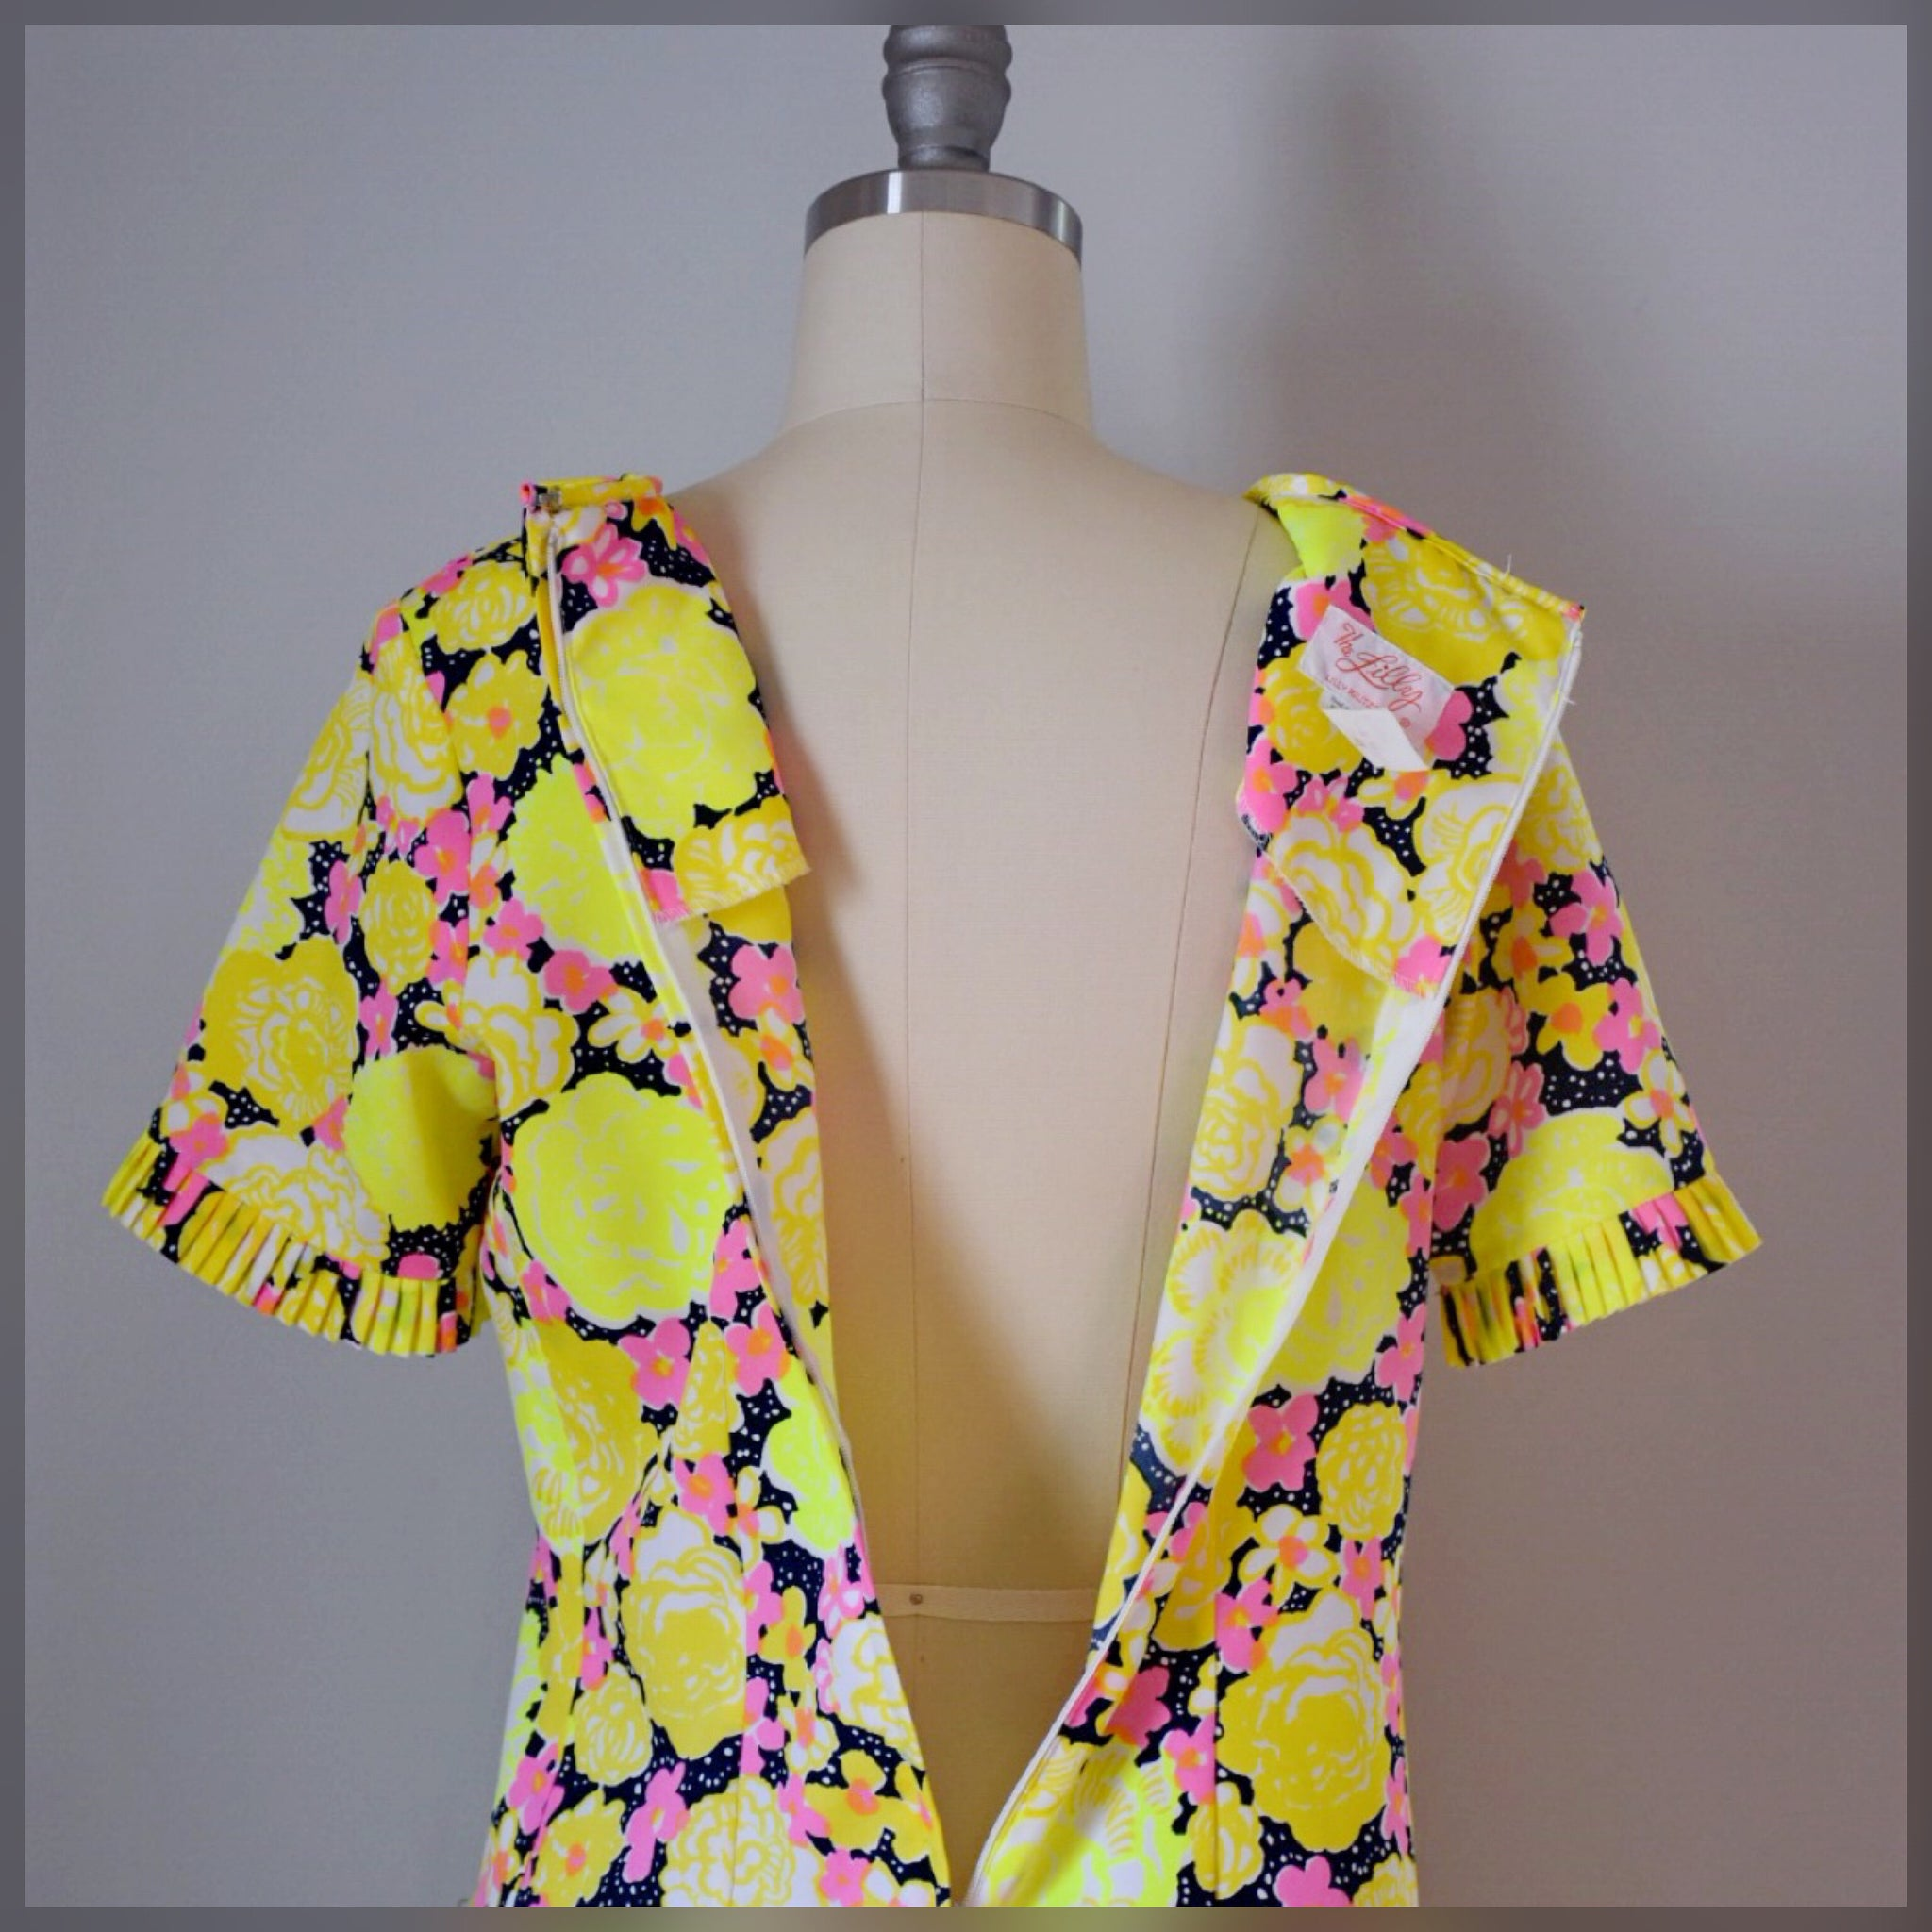 Vintage The Lilly dress from the 60s / 70s